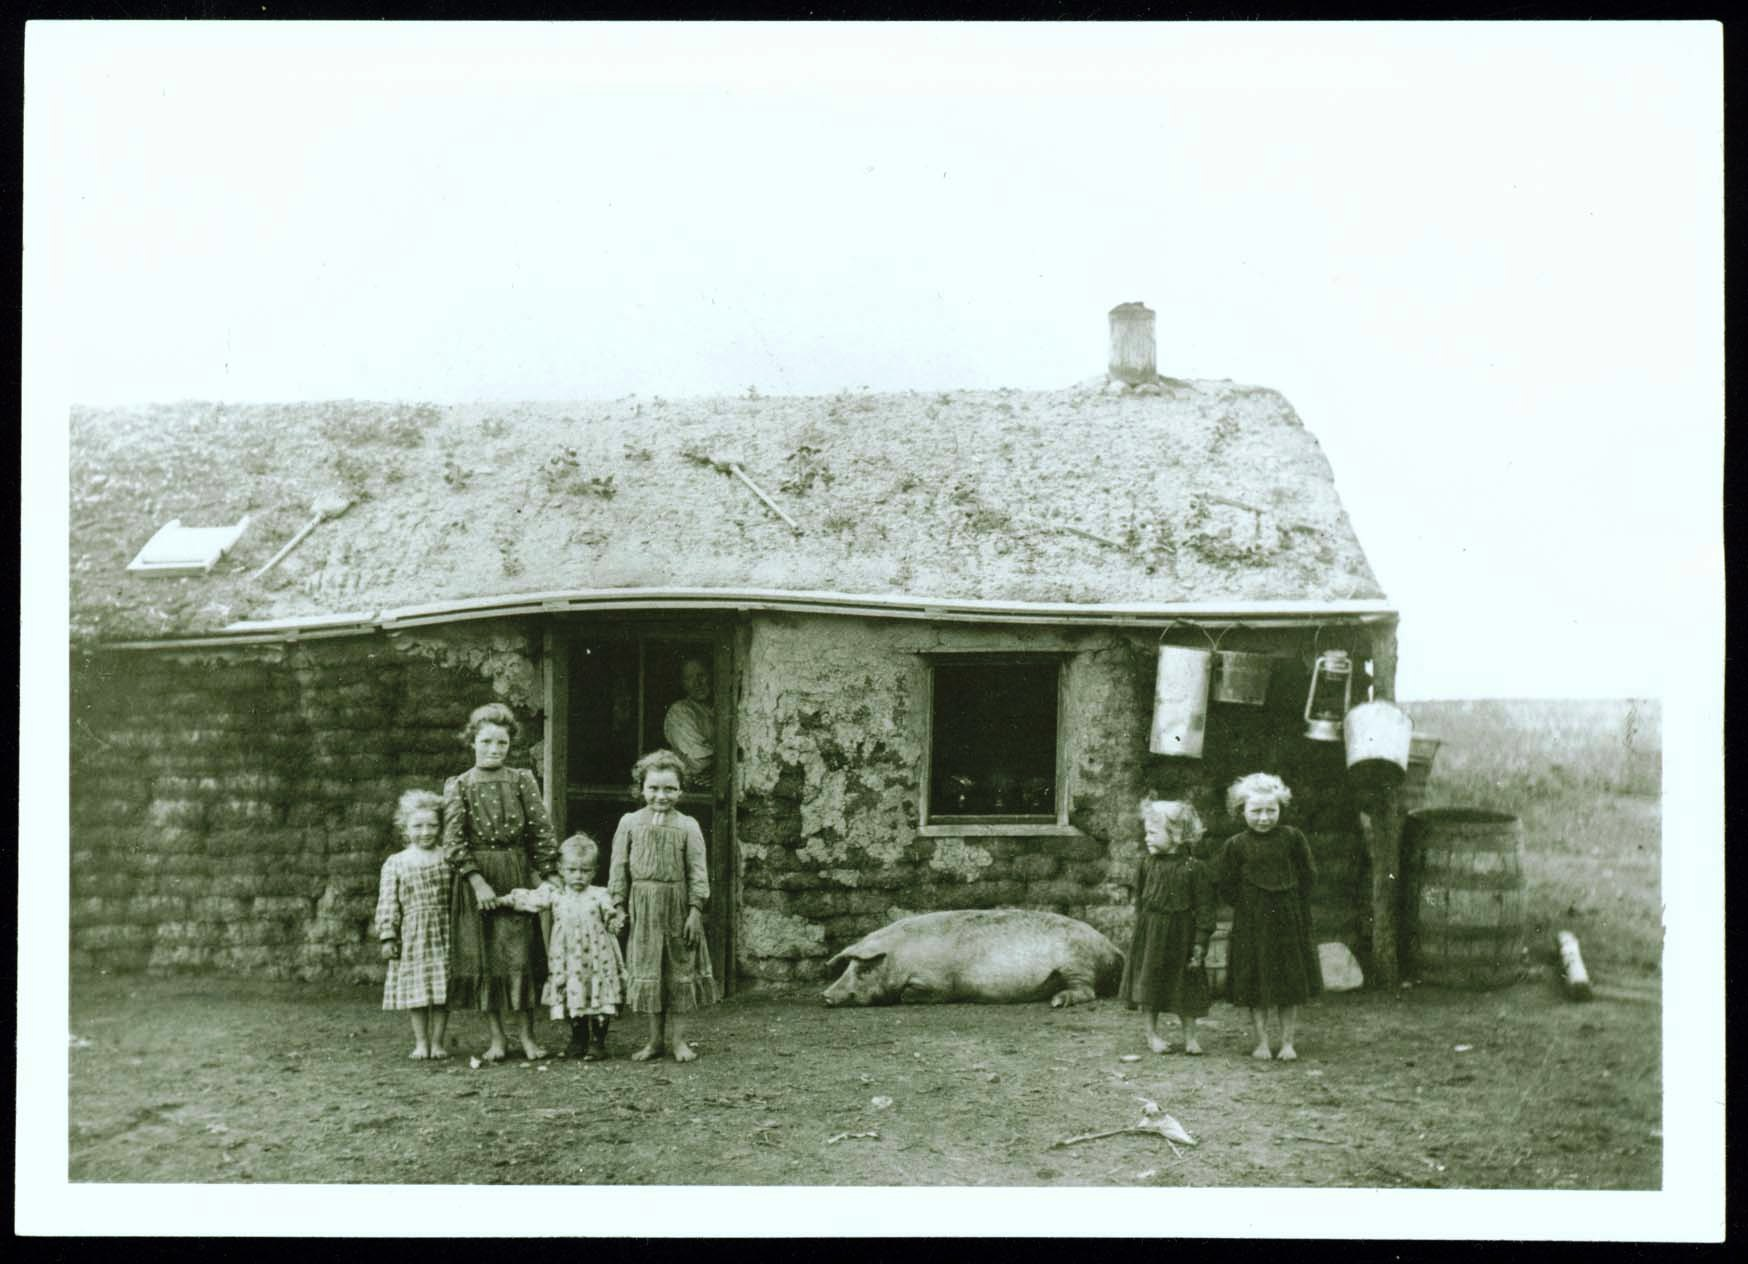 Immigrants Settlement Of Nd Nhd In Nd Archives State Historical Society North Dakota